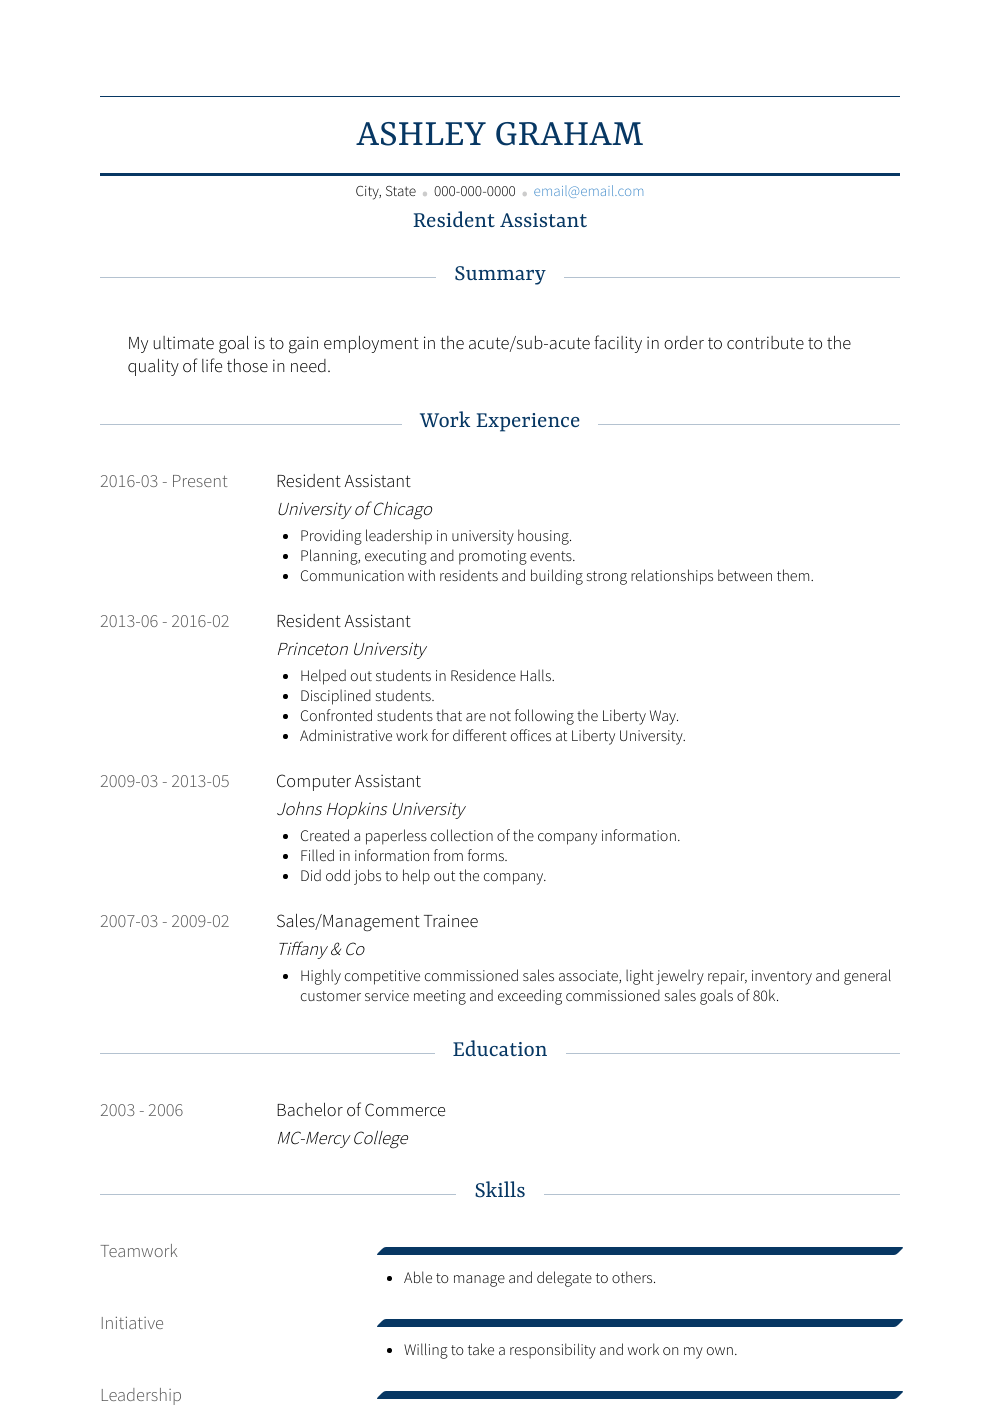 Residential Assistant Resume Sample